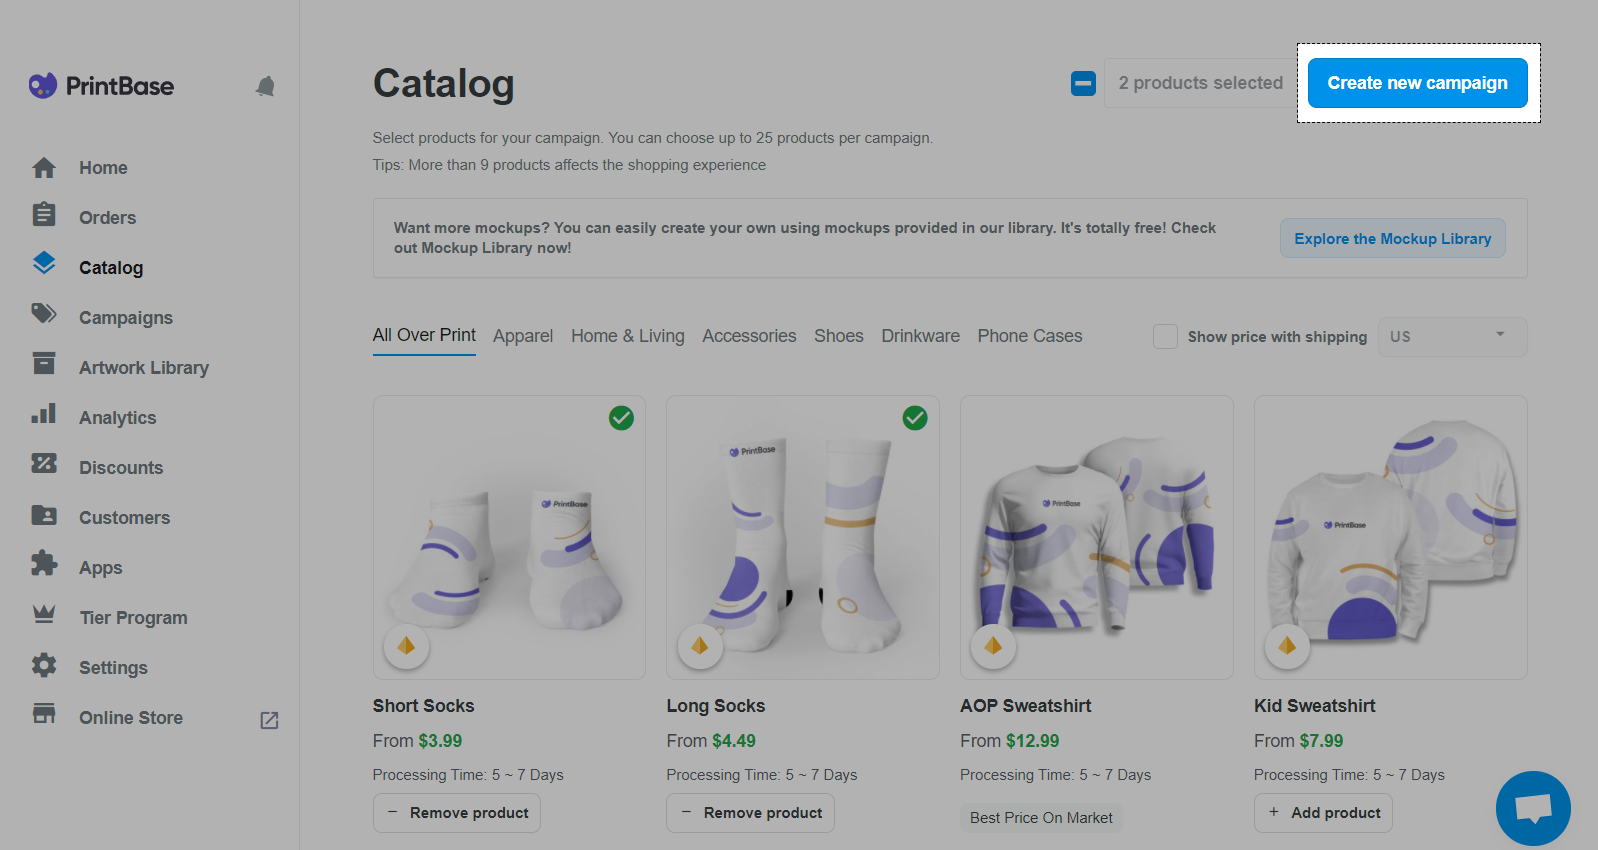 PrintBase interface: choose the product and click Create new campaign